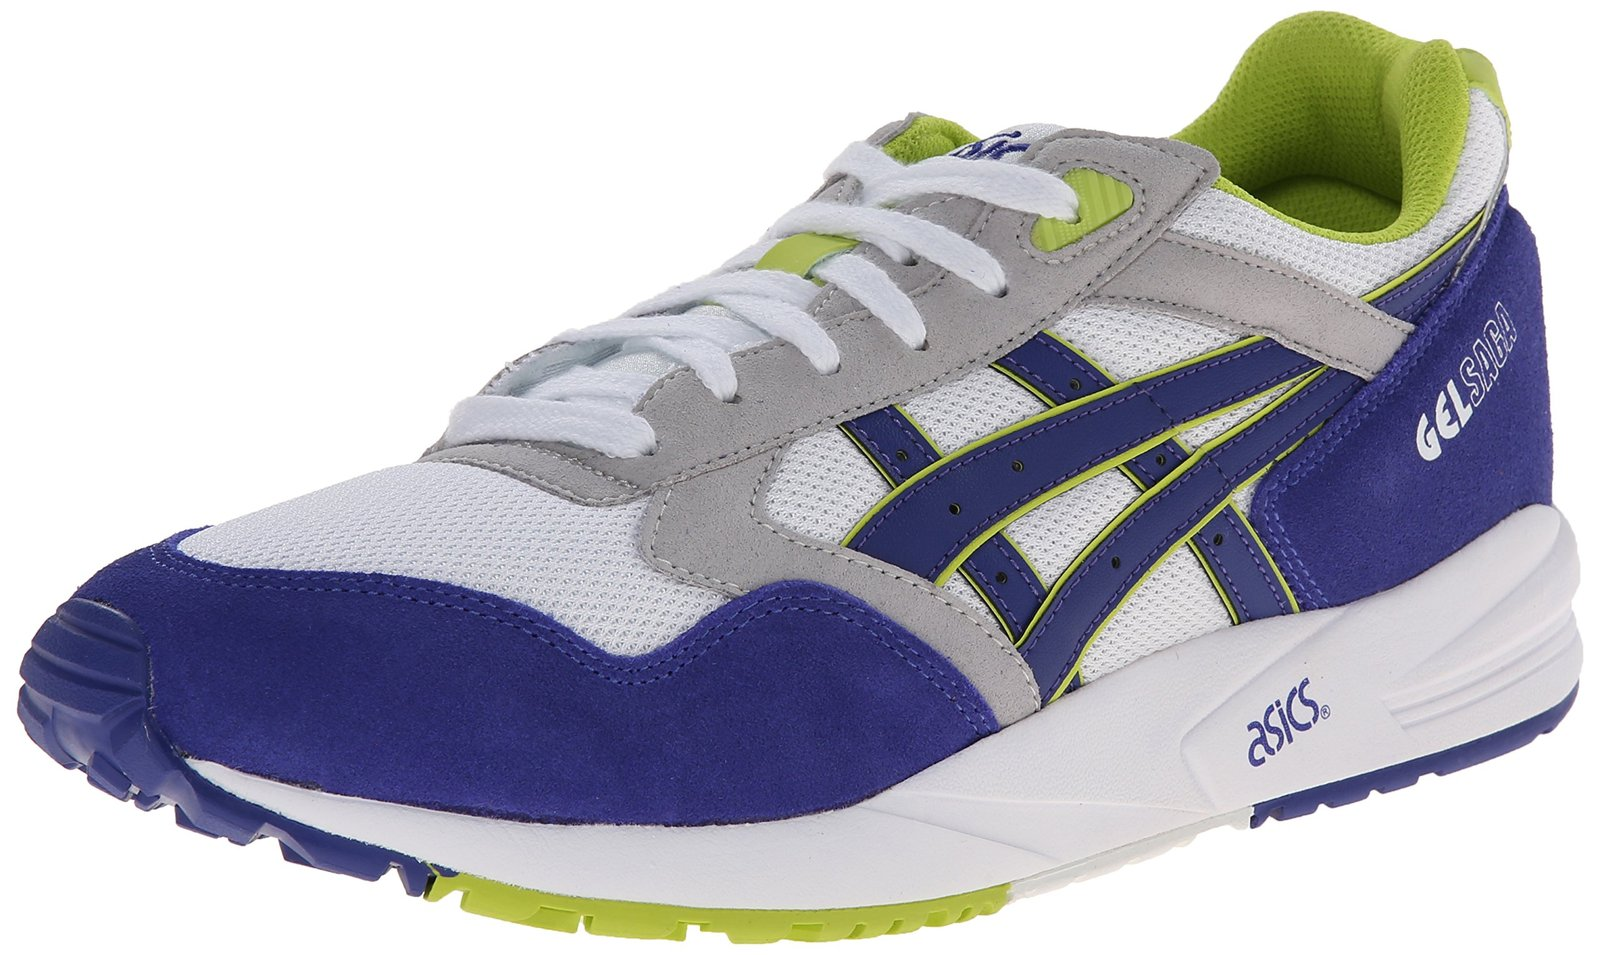 ASICS Gel-Saga Retro Running Shoe, White/Dark Blue, 7 M US